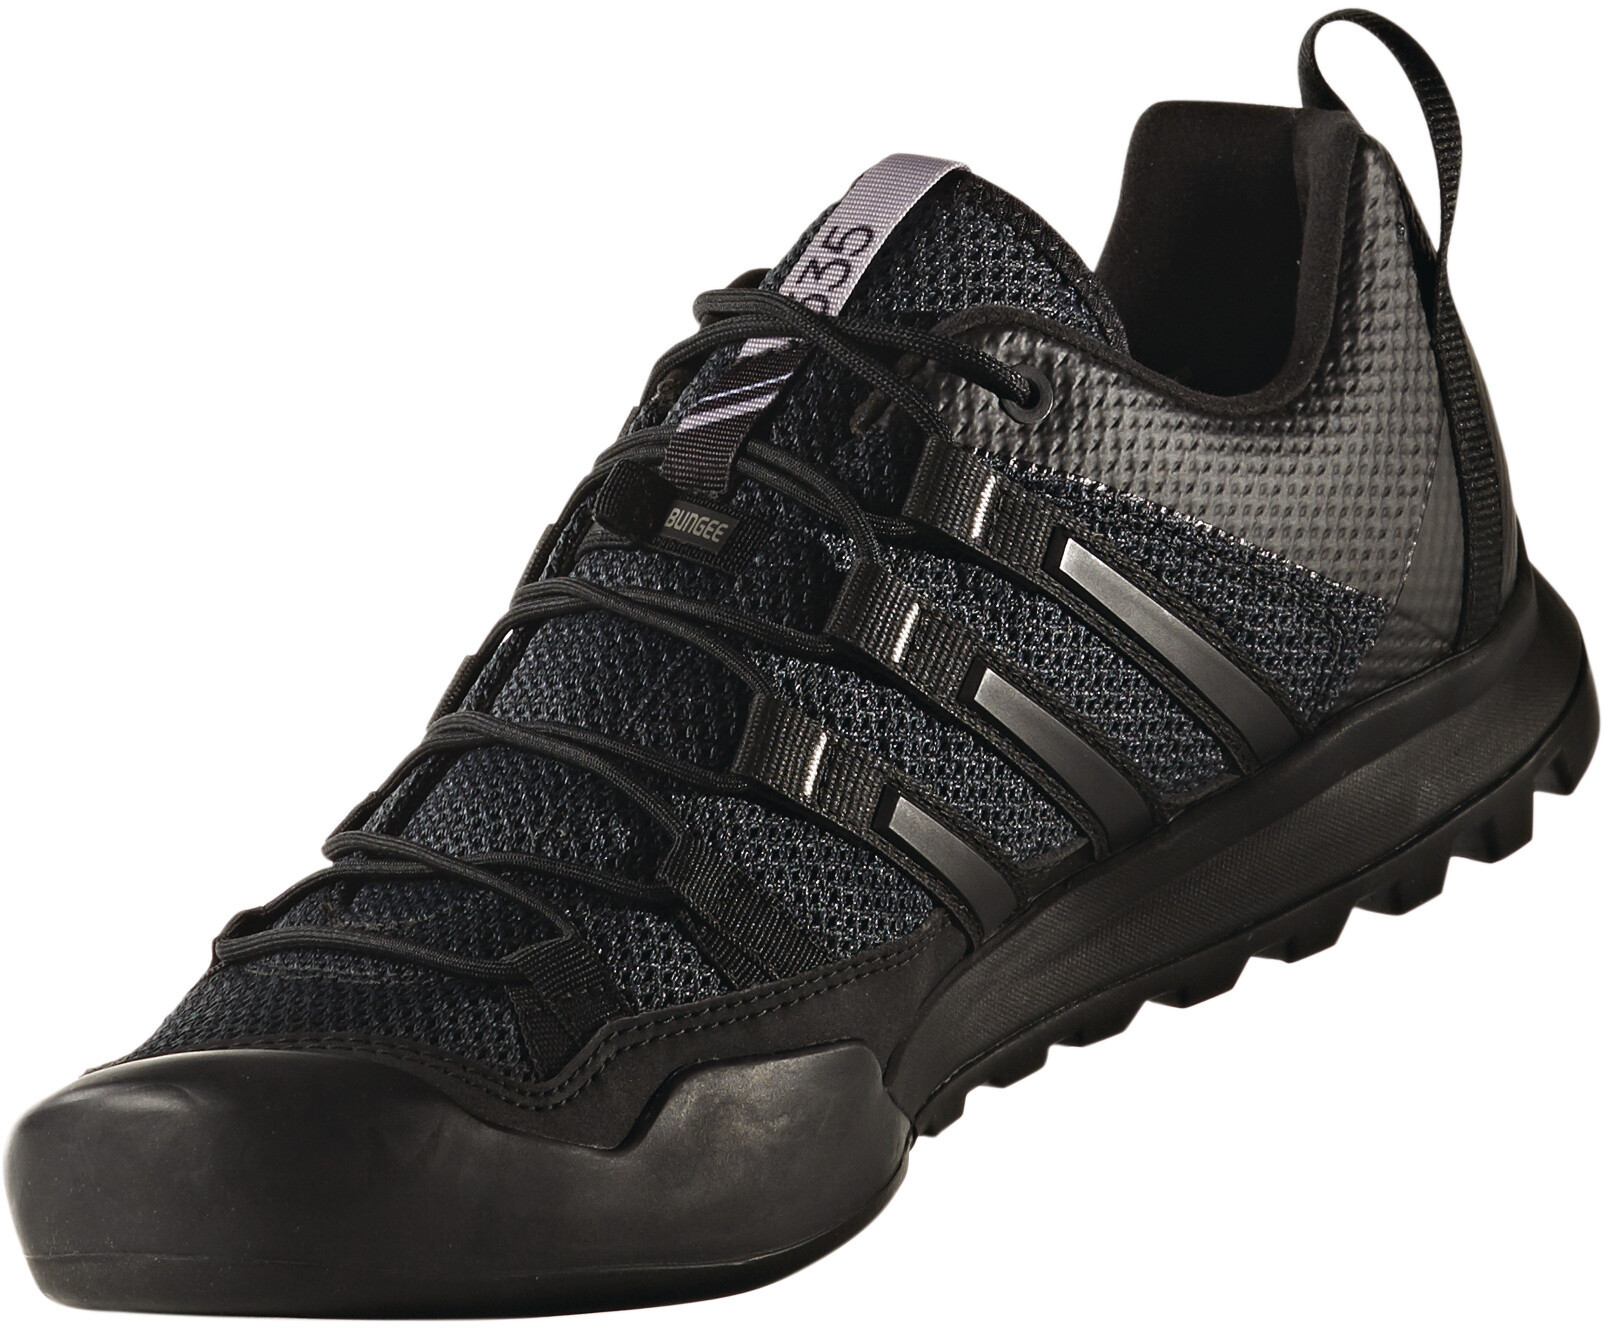 Chaussure Homme Adidas Terrex Solo Chaussures Homme Gris Noir